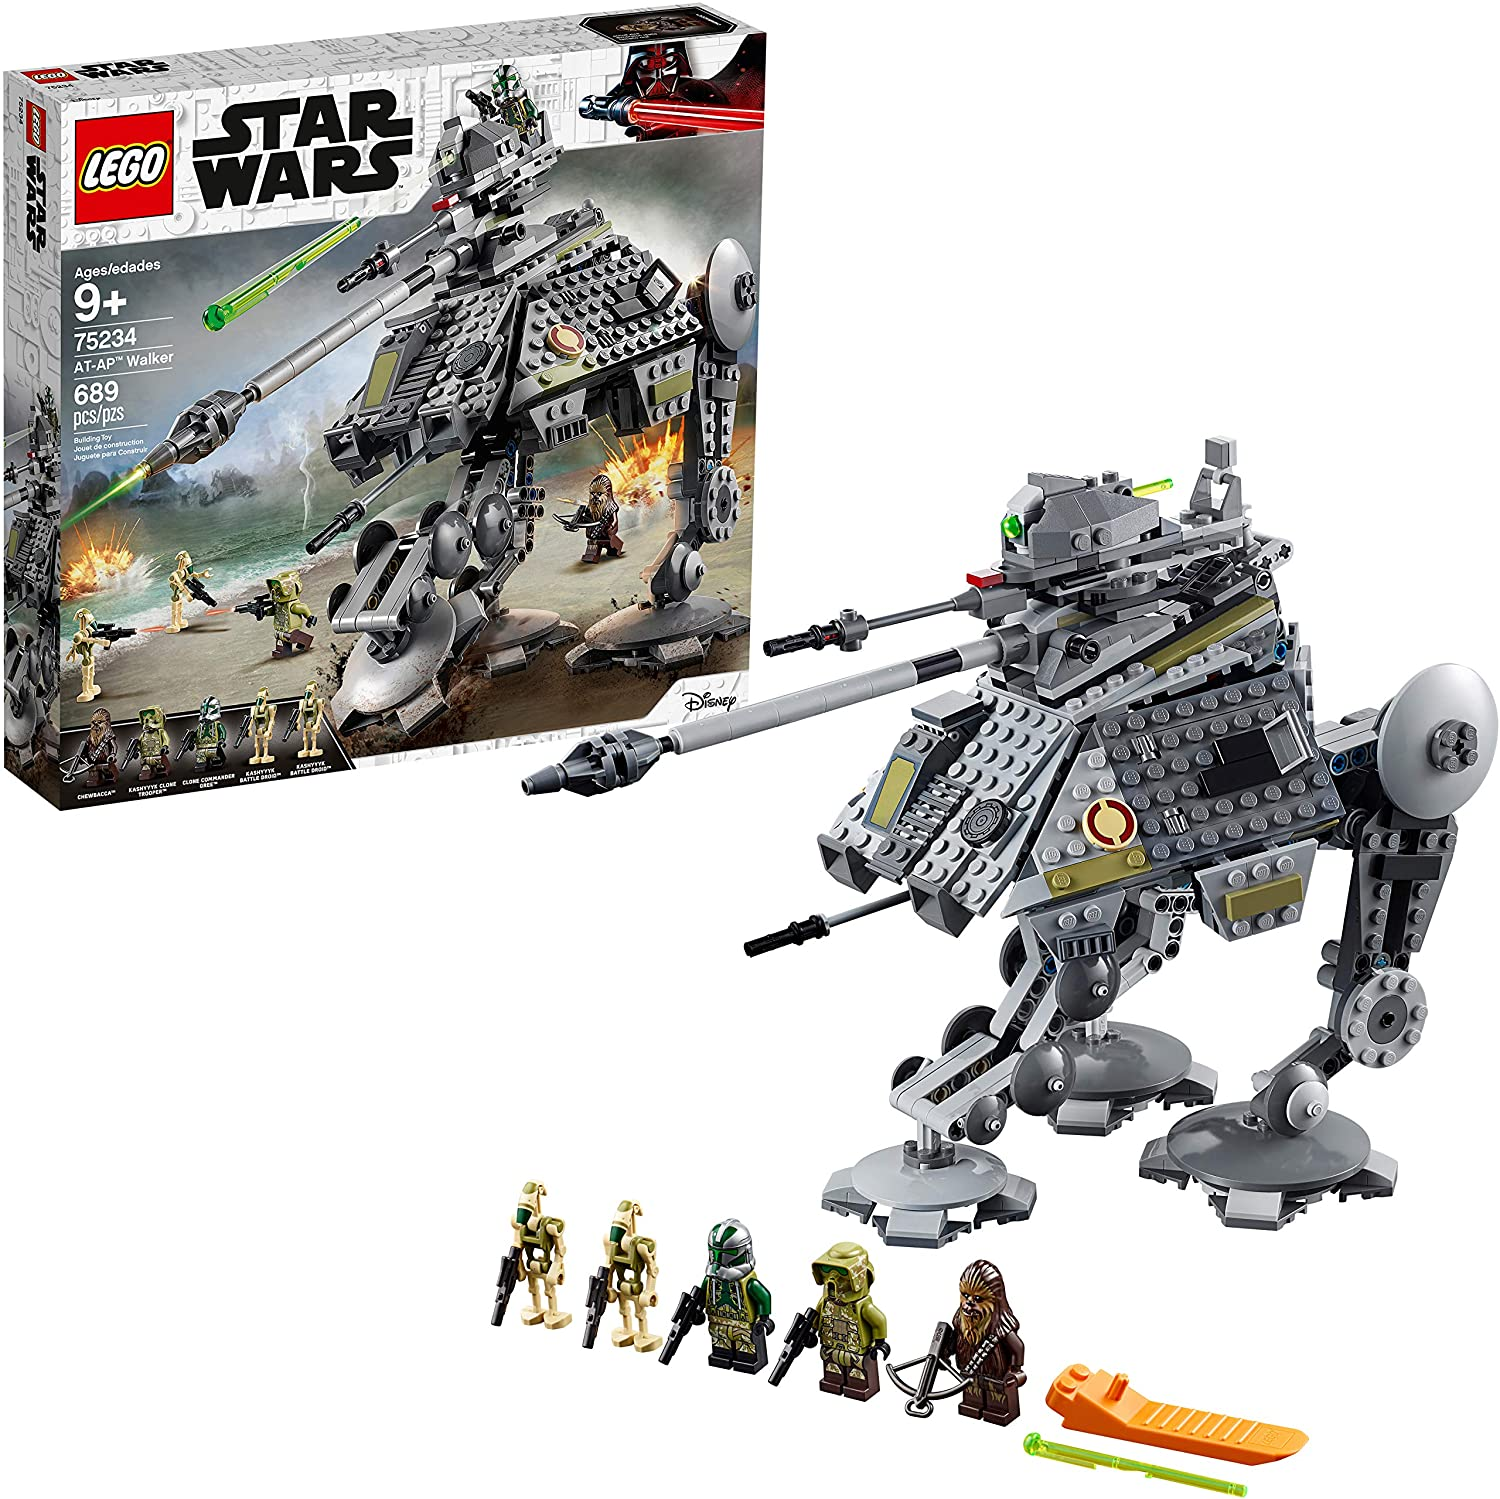 Amazon Com Lego Star Wars Revenge Of The Sith At Ap Walker 75234 Building Kit 689 Pieces Toys Games